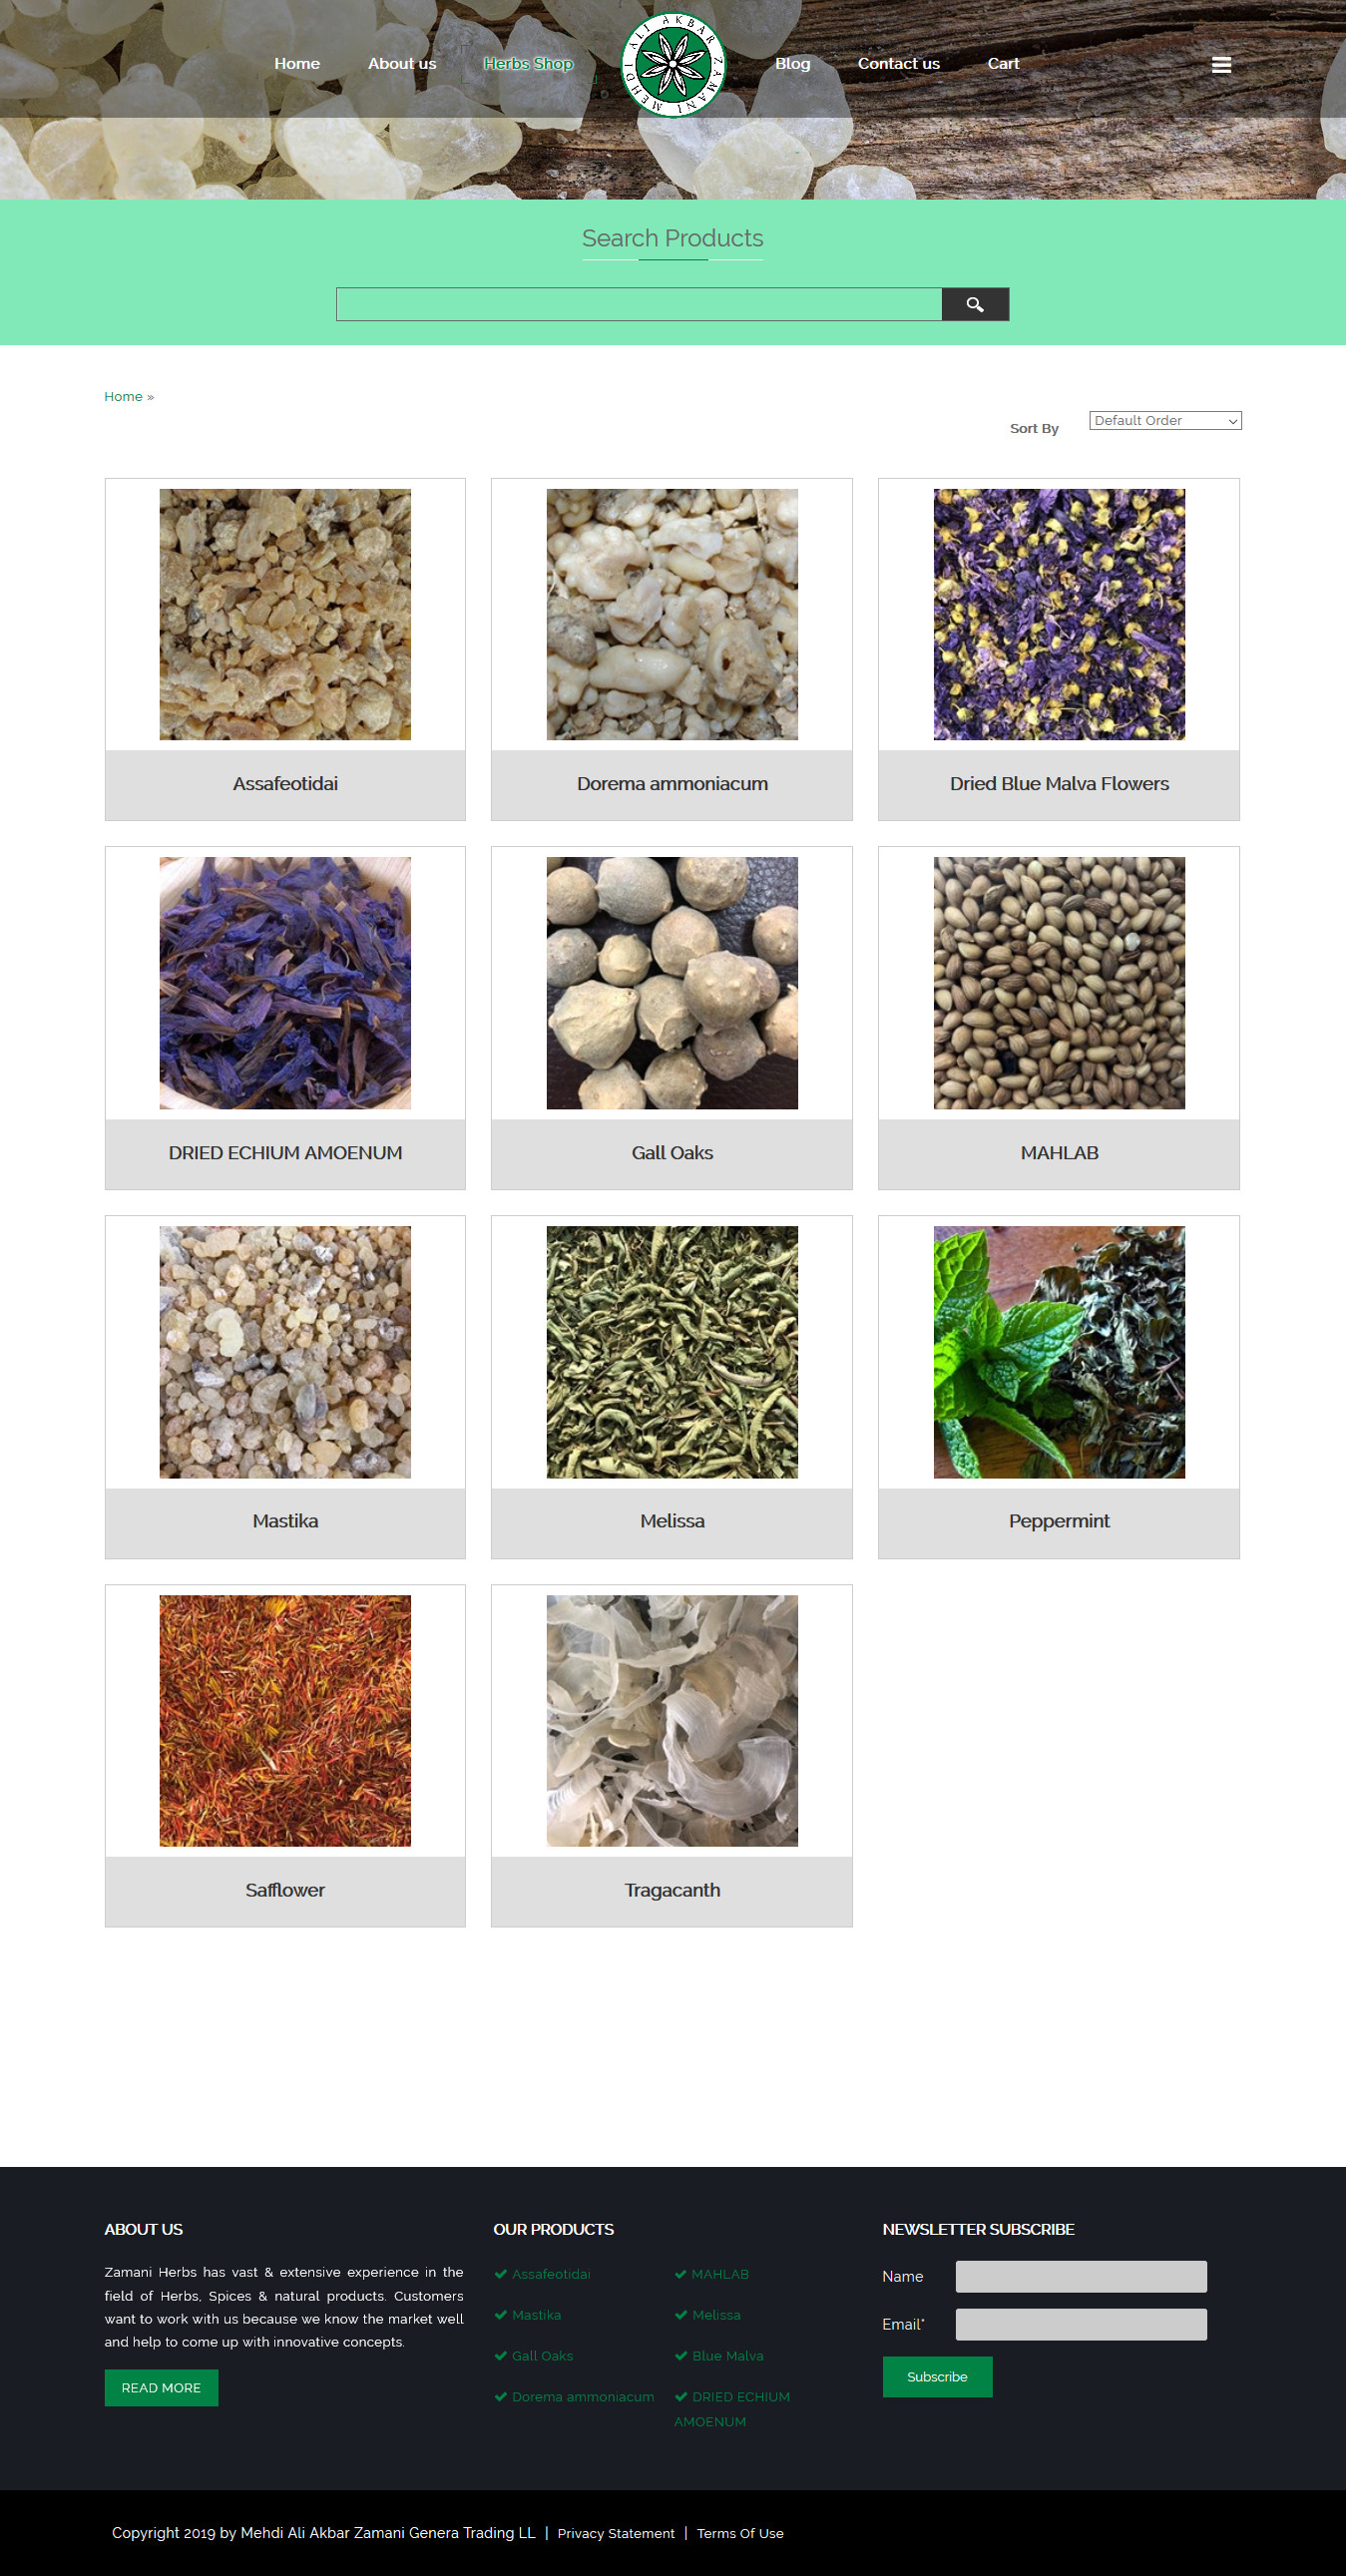 zamaniherbs-product-list